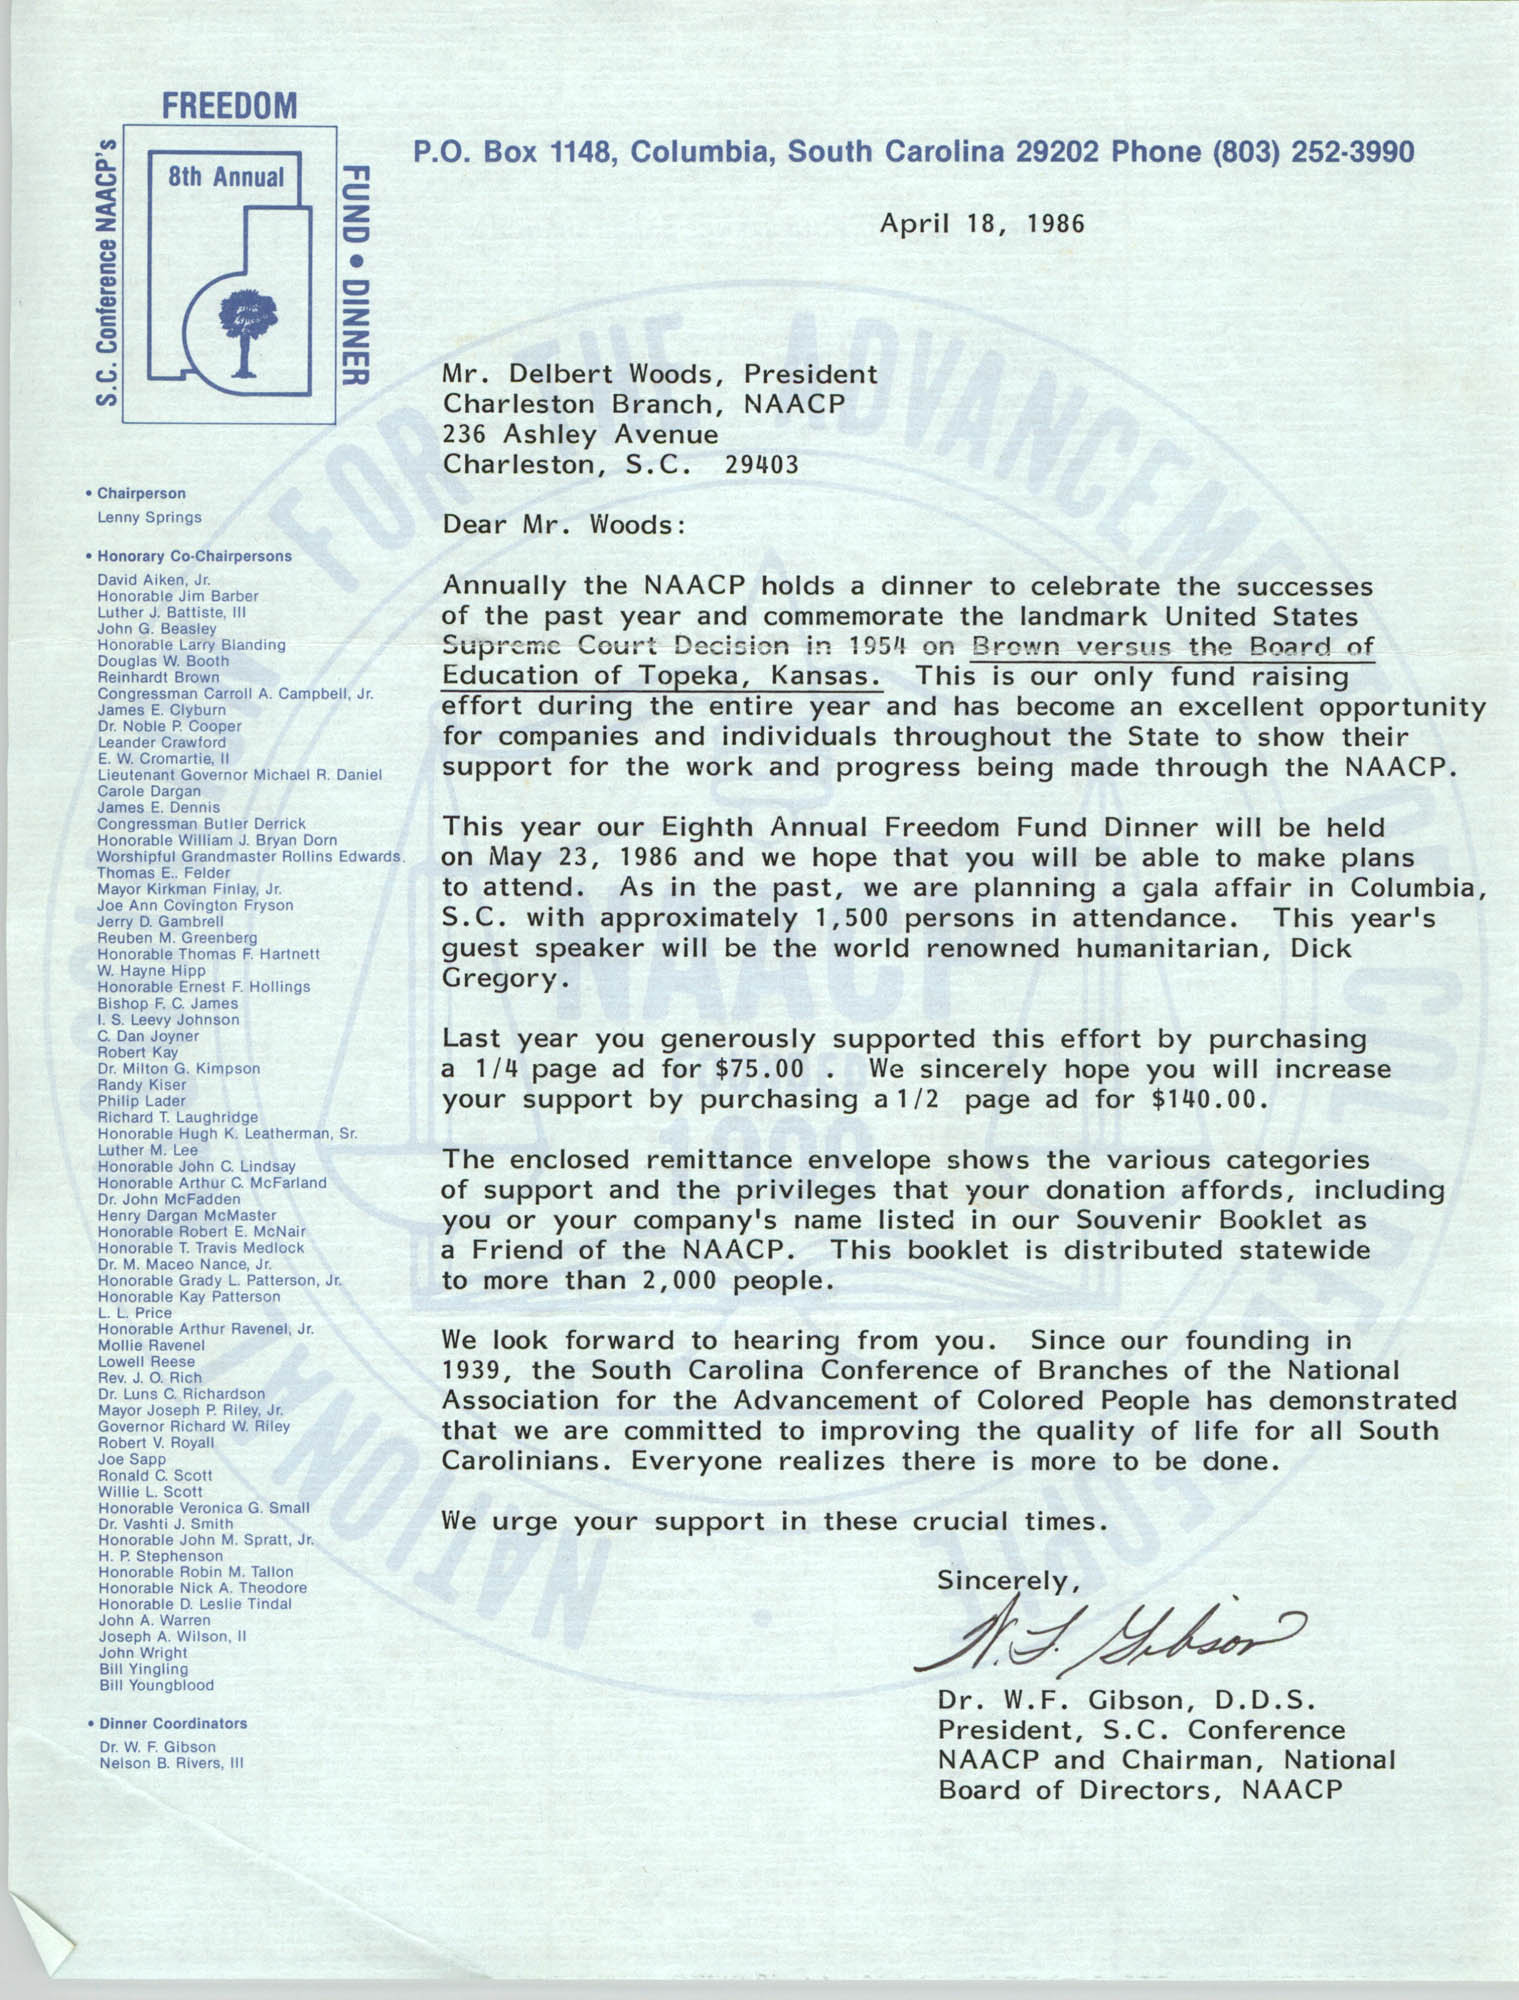 Letter from W.F. Gibson to Delbert Woods,  April 18, 1986